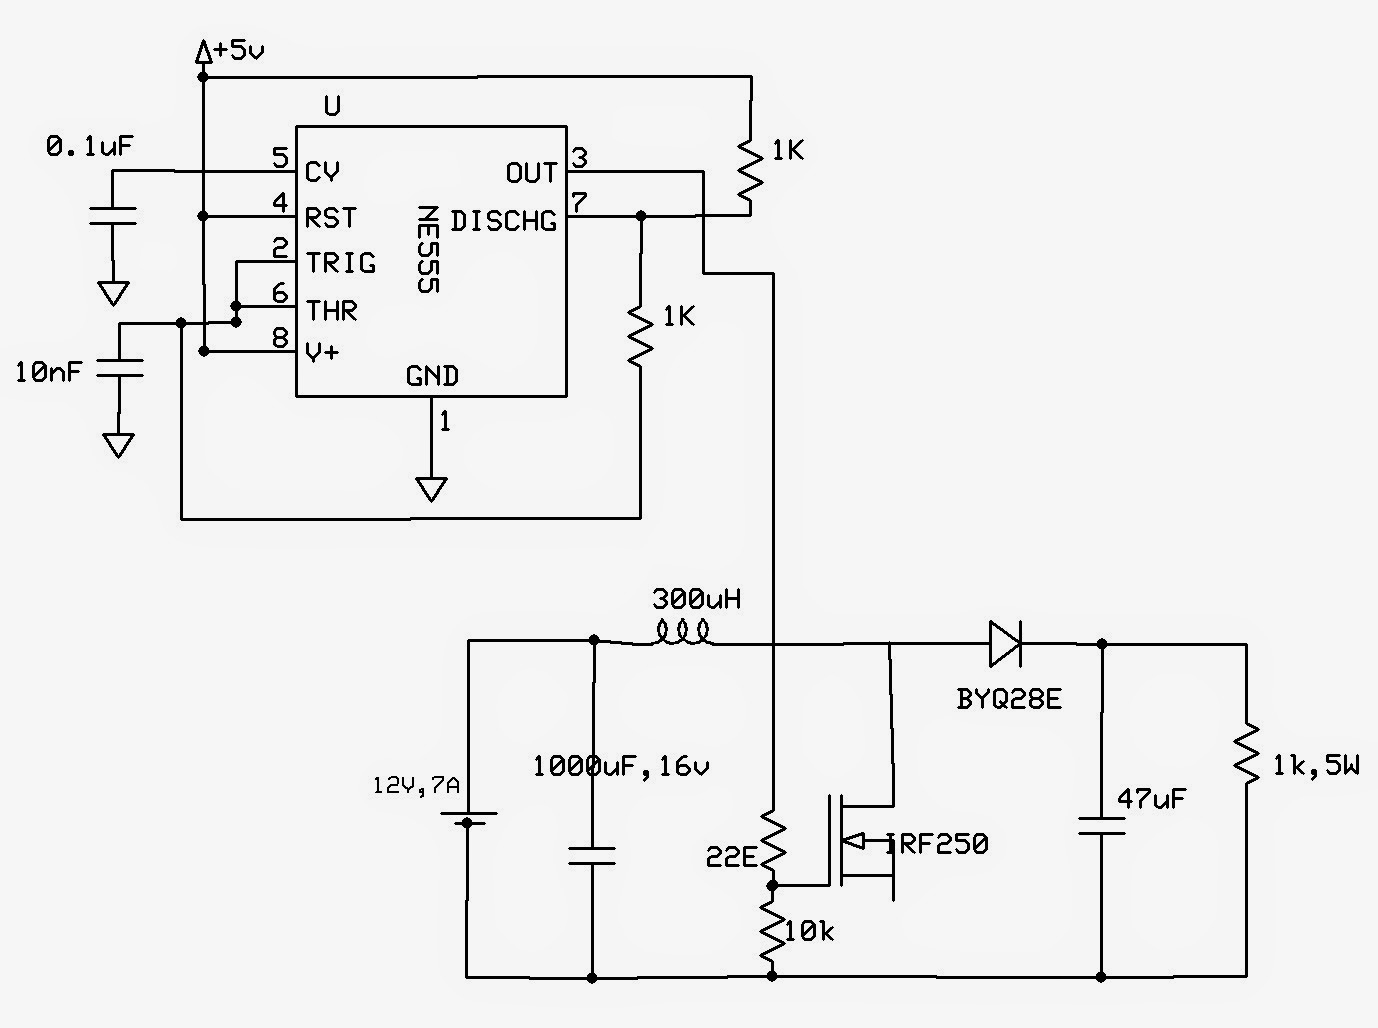 A3144 Hall Effect Sensor Circuit Not Lossing Wiring Diagram Emerging Technologies 555 Based Boost Converter Switch 41f